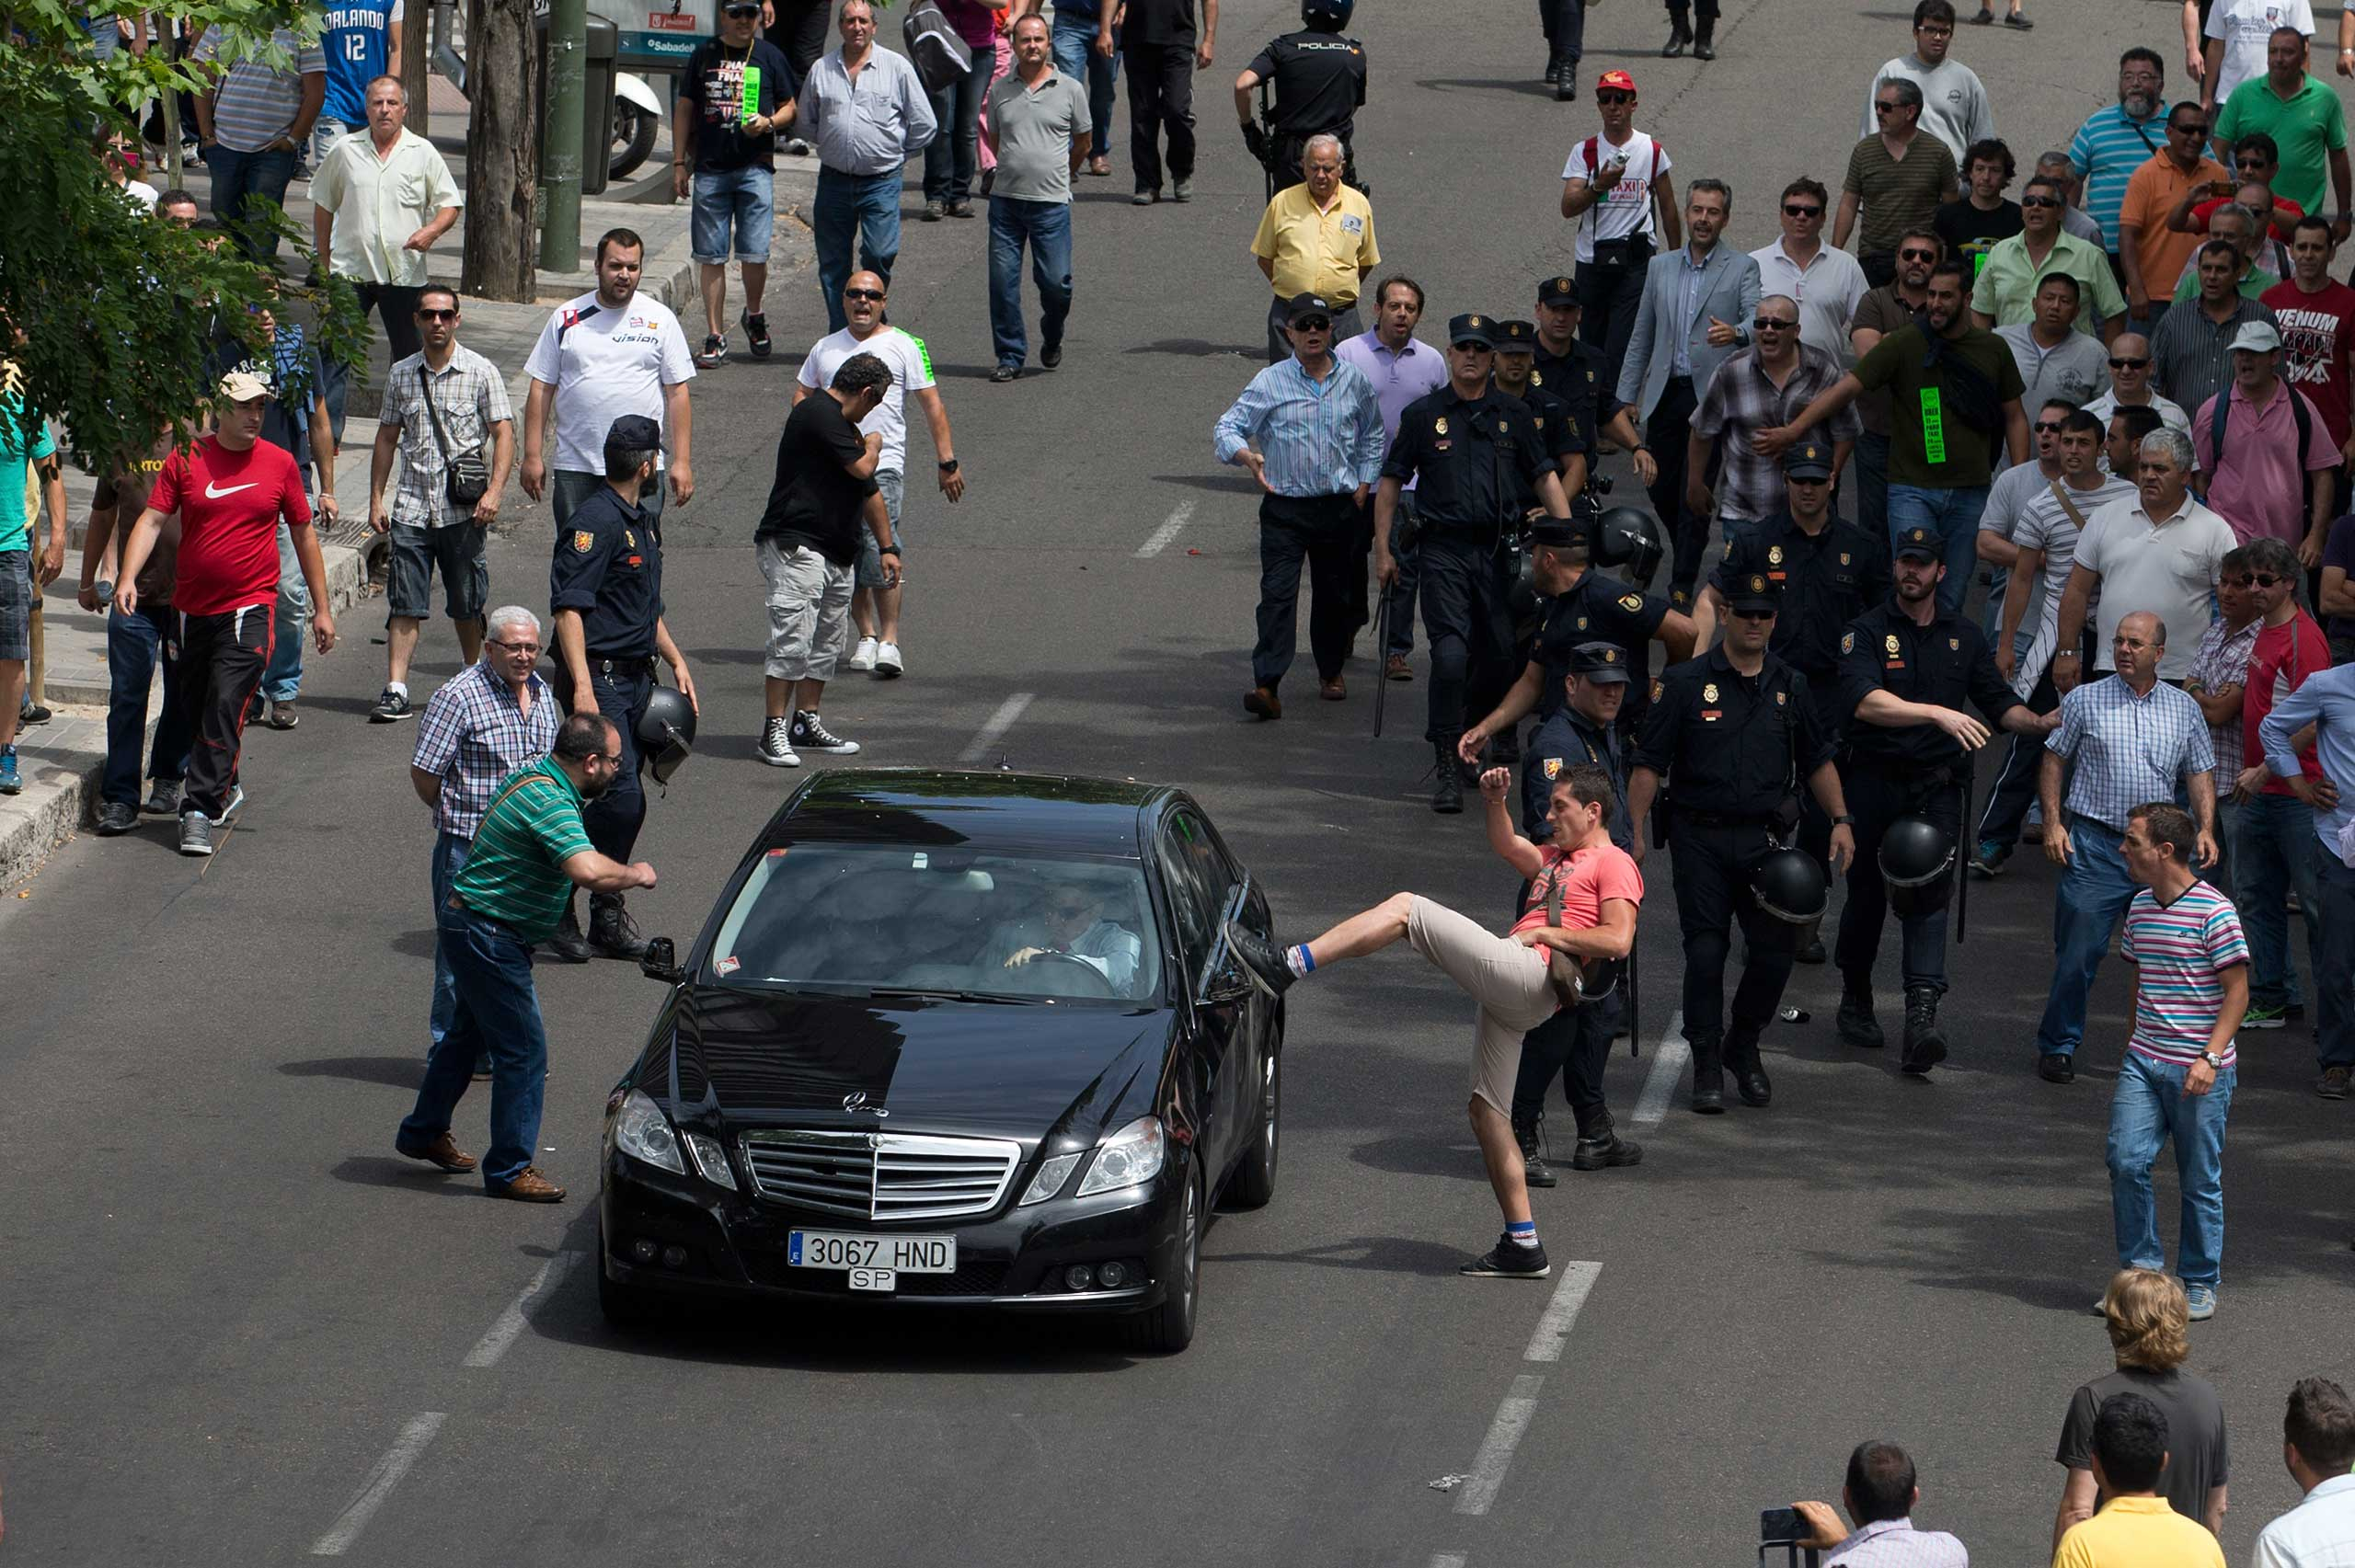 A demonstrator kicks a car, suspected of being a private taxi during a 24 hour taxi strike and protest in Madrid on June 11, 2014.